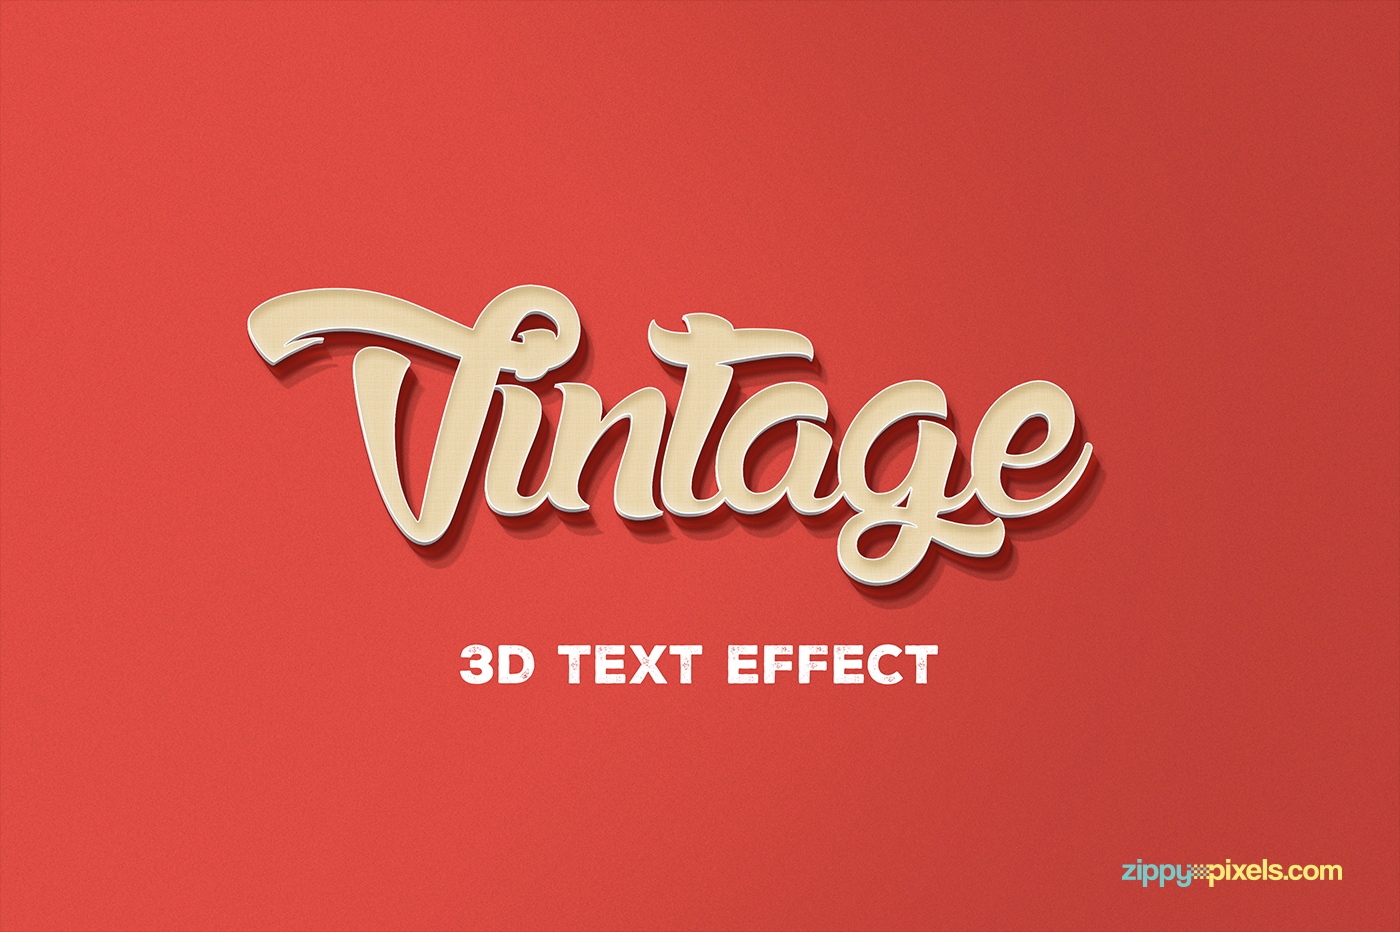 Vintage themed free psd 3d text effect on behance.